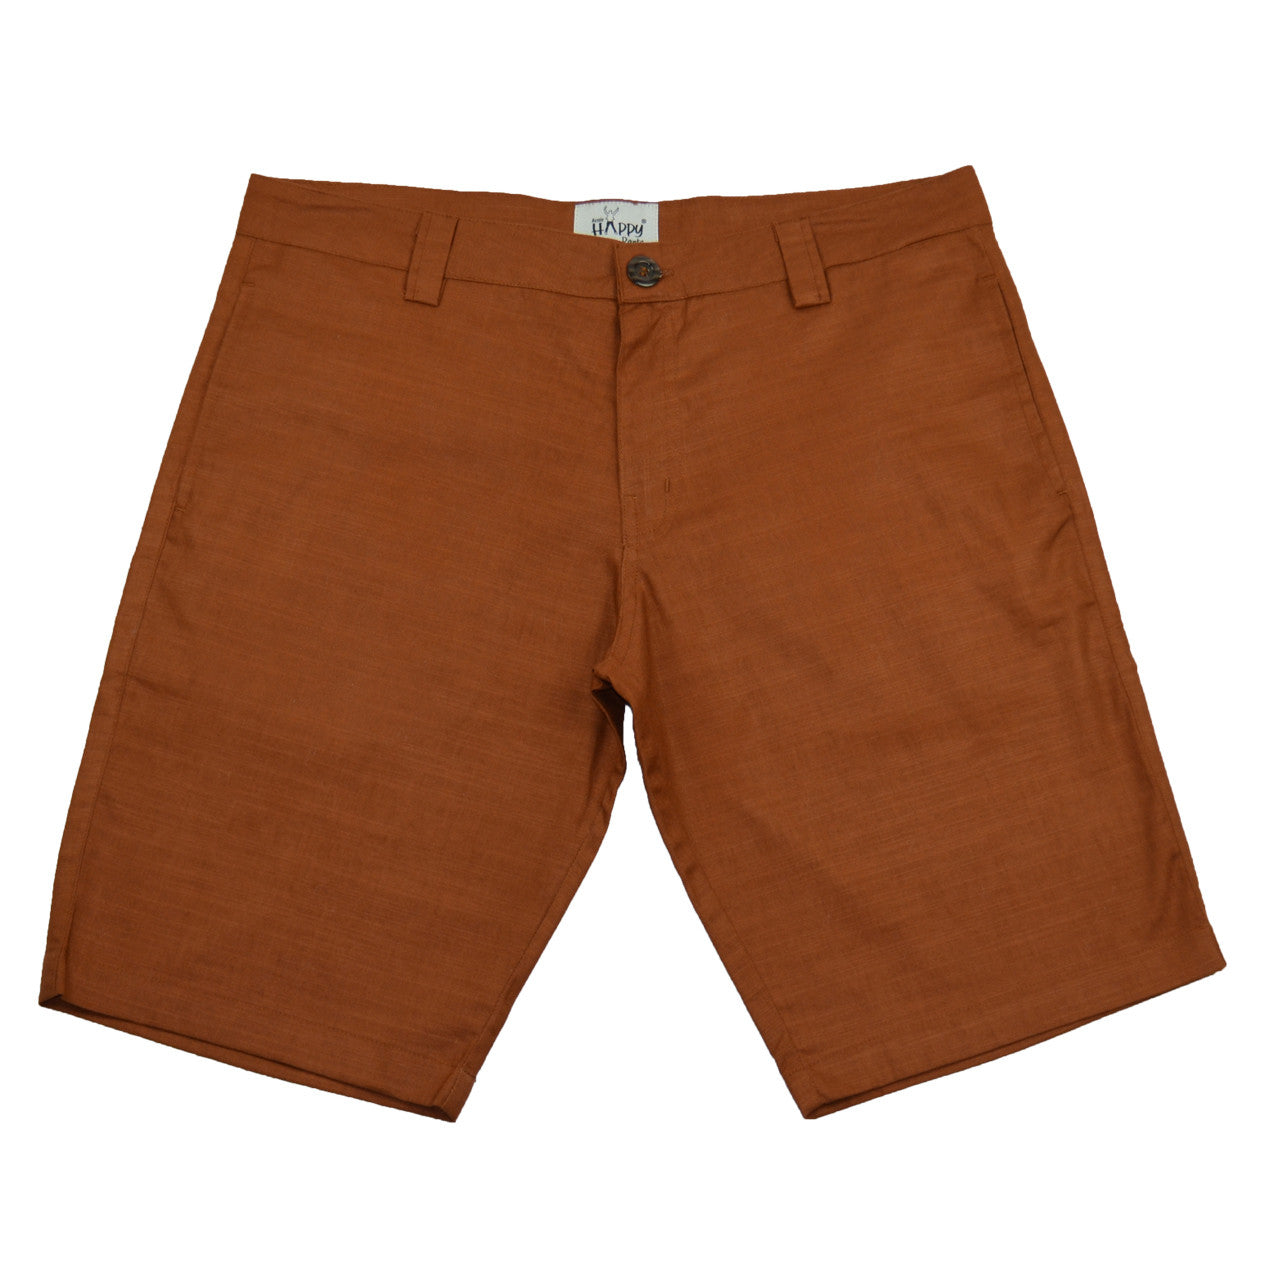 Brown Cotton BoardShorts - Happy Pants - 1